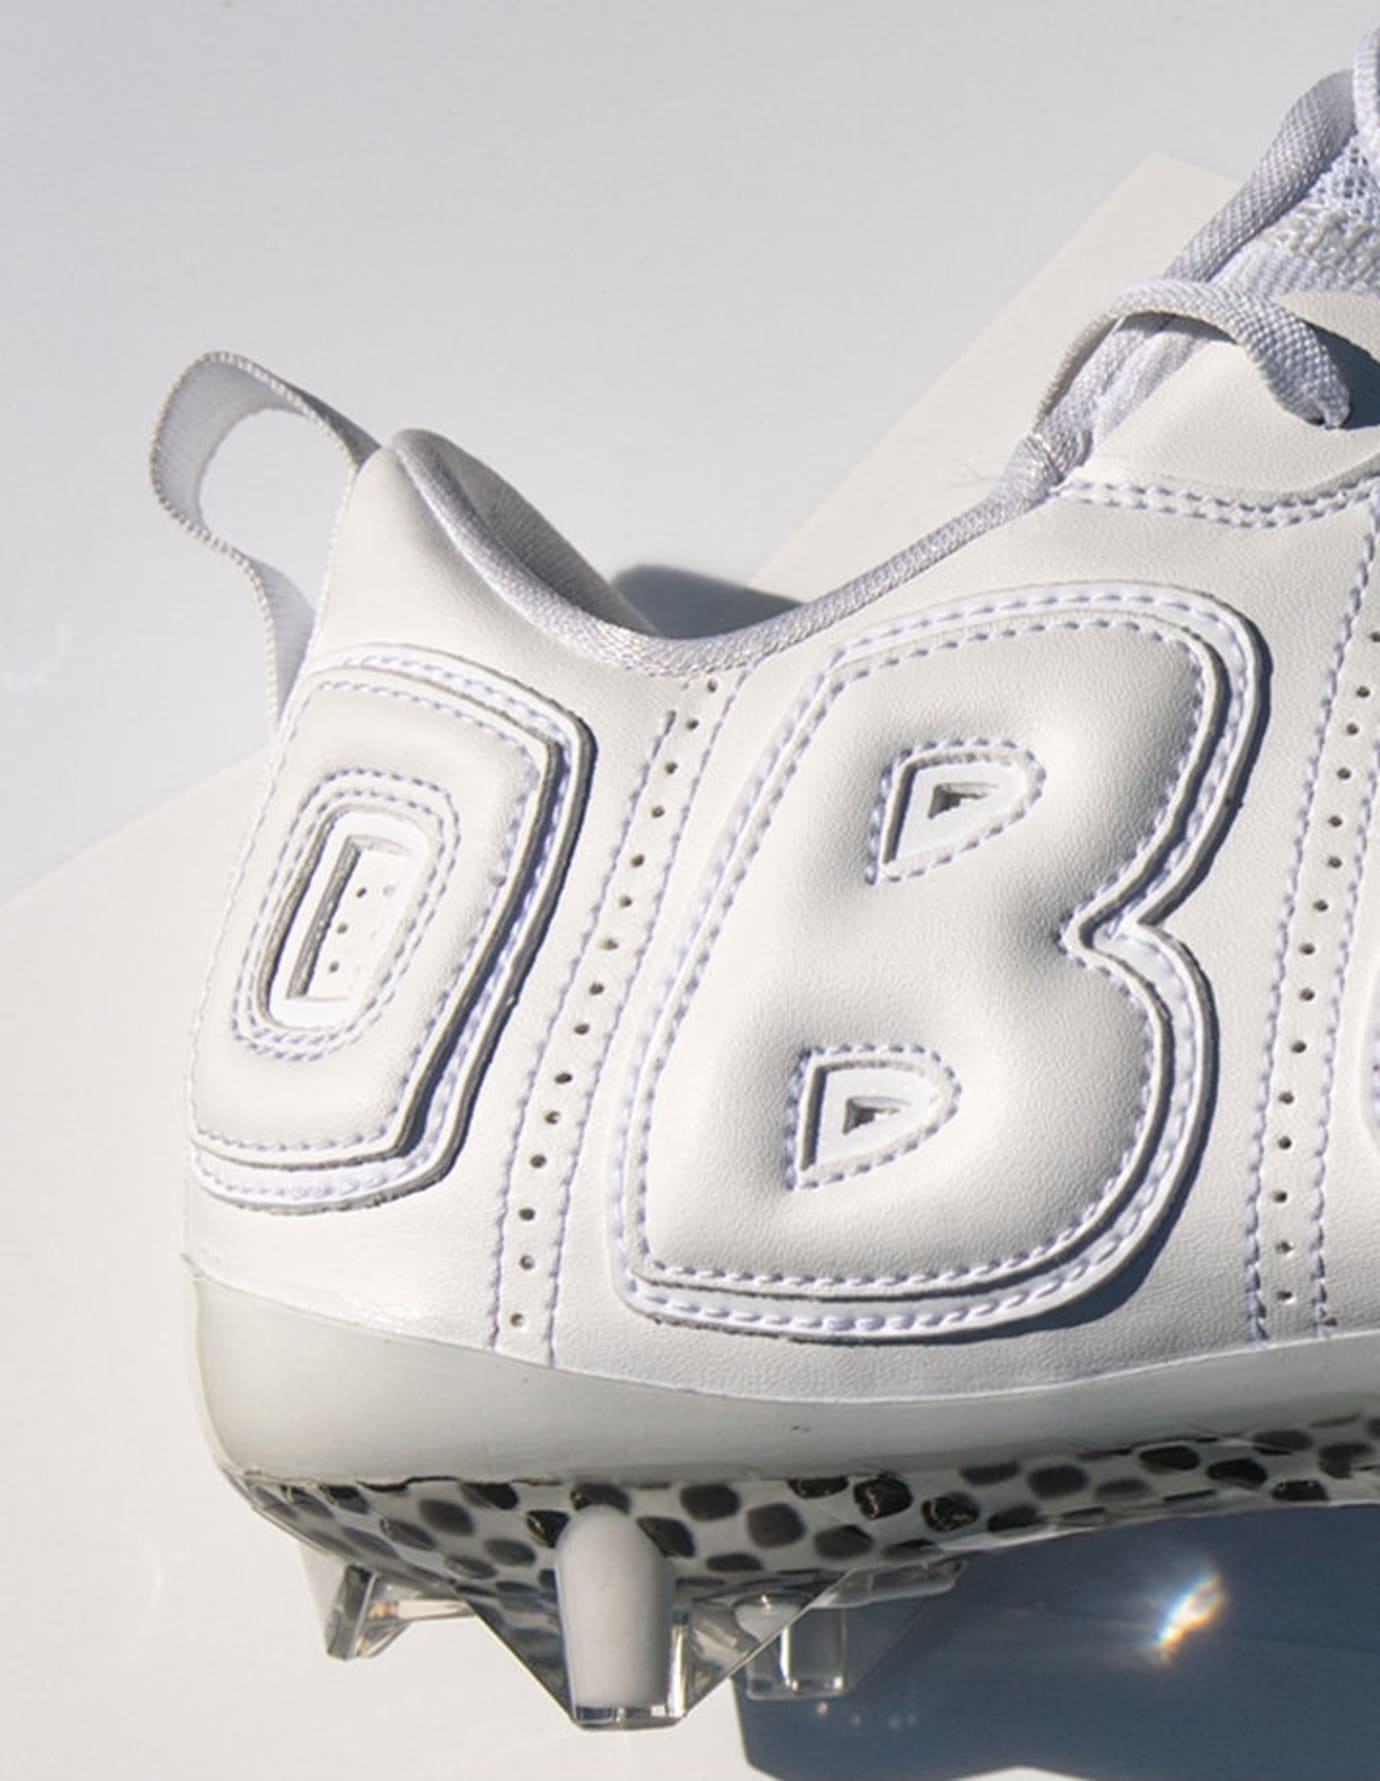 Odell Beckham Nike Air More Uptempo White Cleats Heel